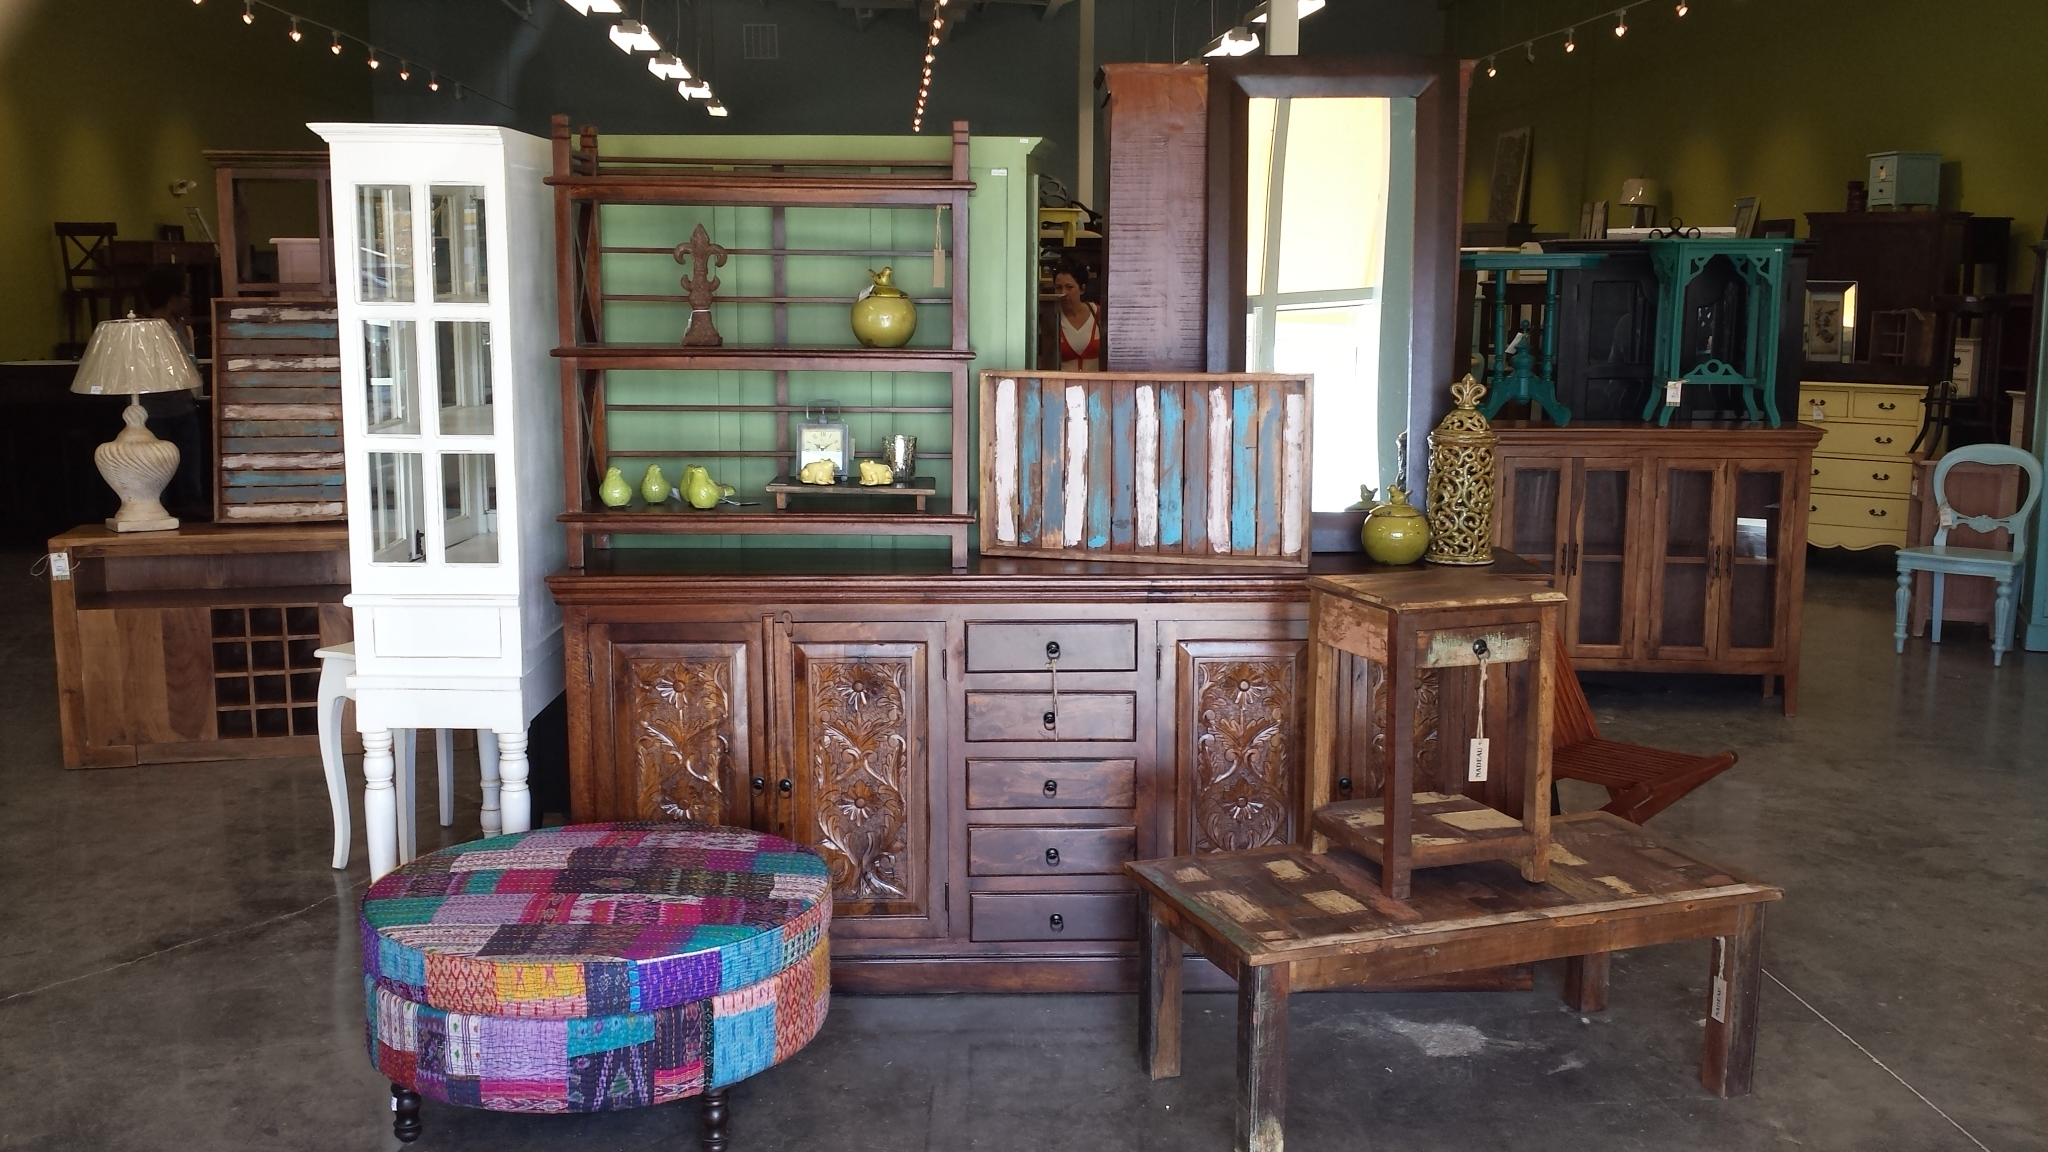 half home furniture gallery of early rouge new american bedroom tx ashley sakis beaumont in towards baton look furnishings world view affordable bathroom stores sulphur boomtown la cupboard bel off